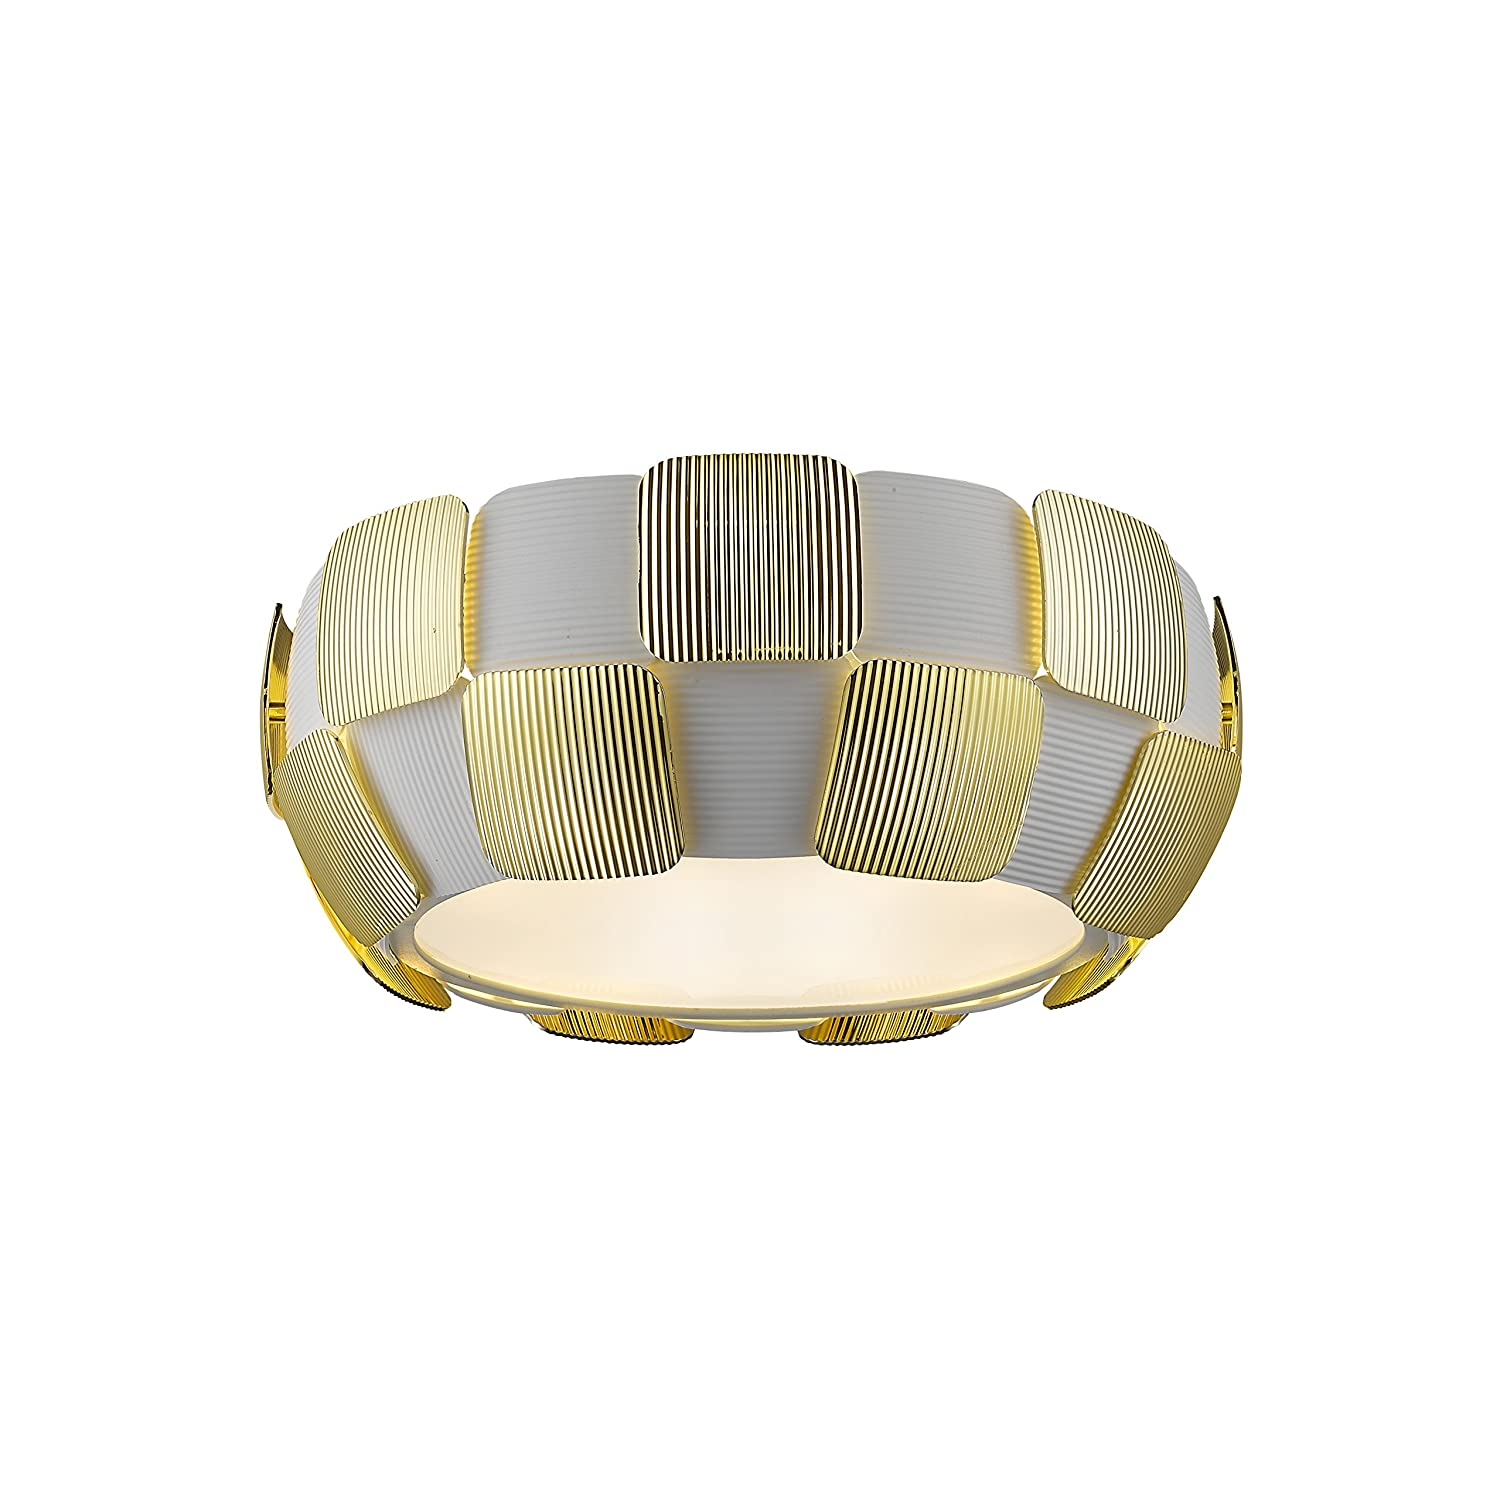 Access Lighting 50900LED-WH/GLD Layers LED 14-Inch Diameter Flush Mount with White Shade, Gold